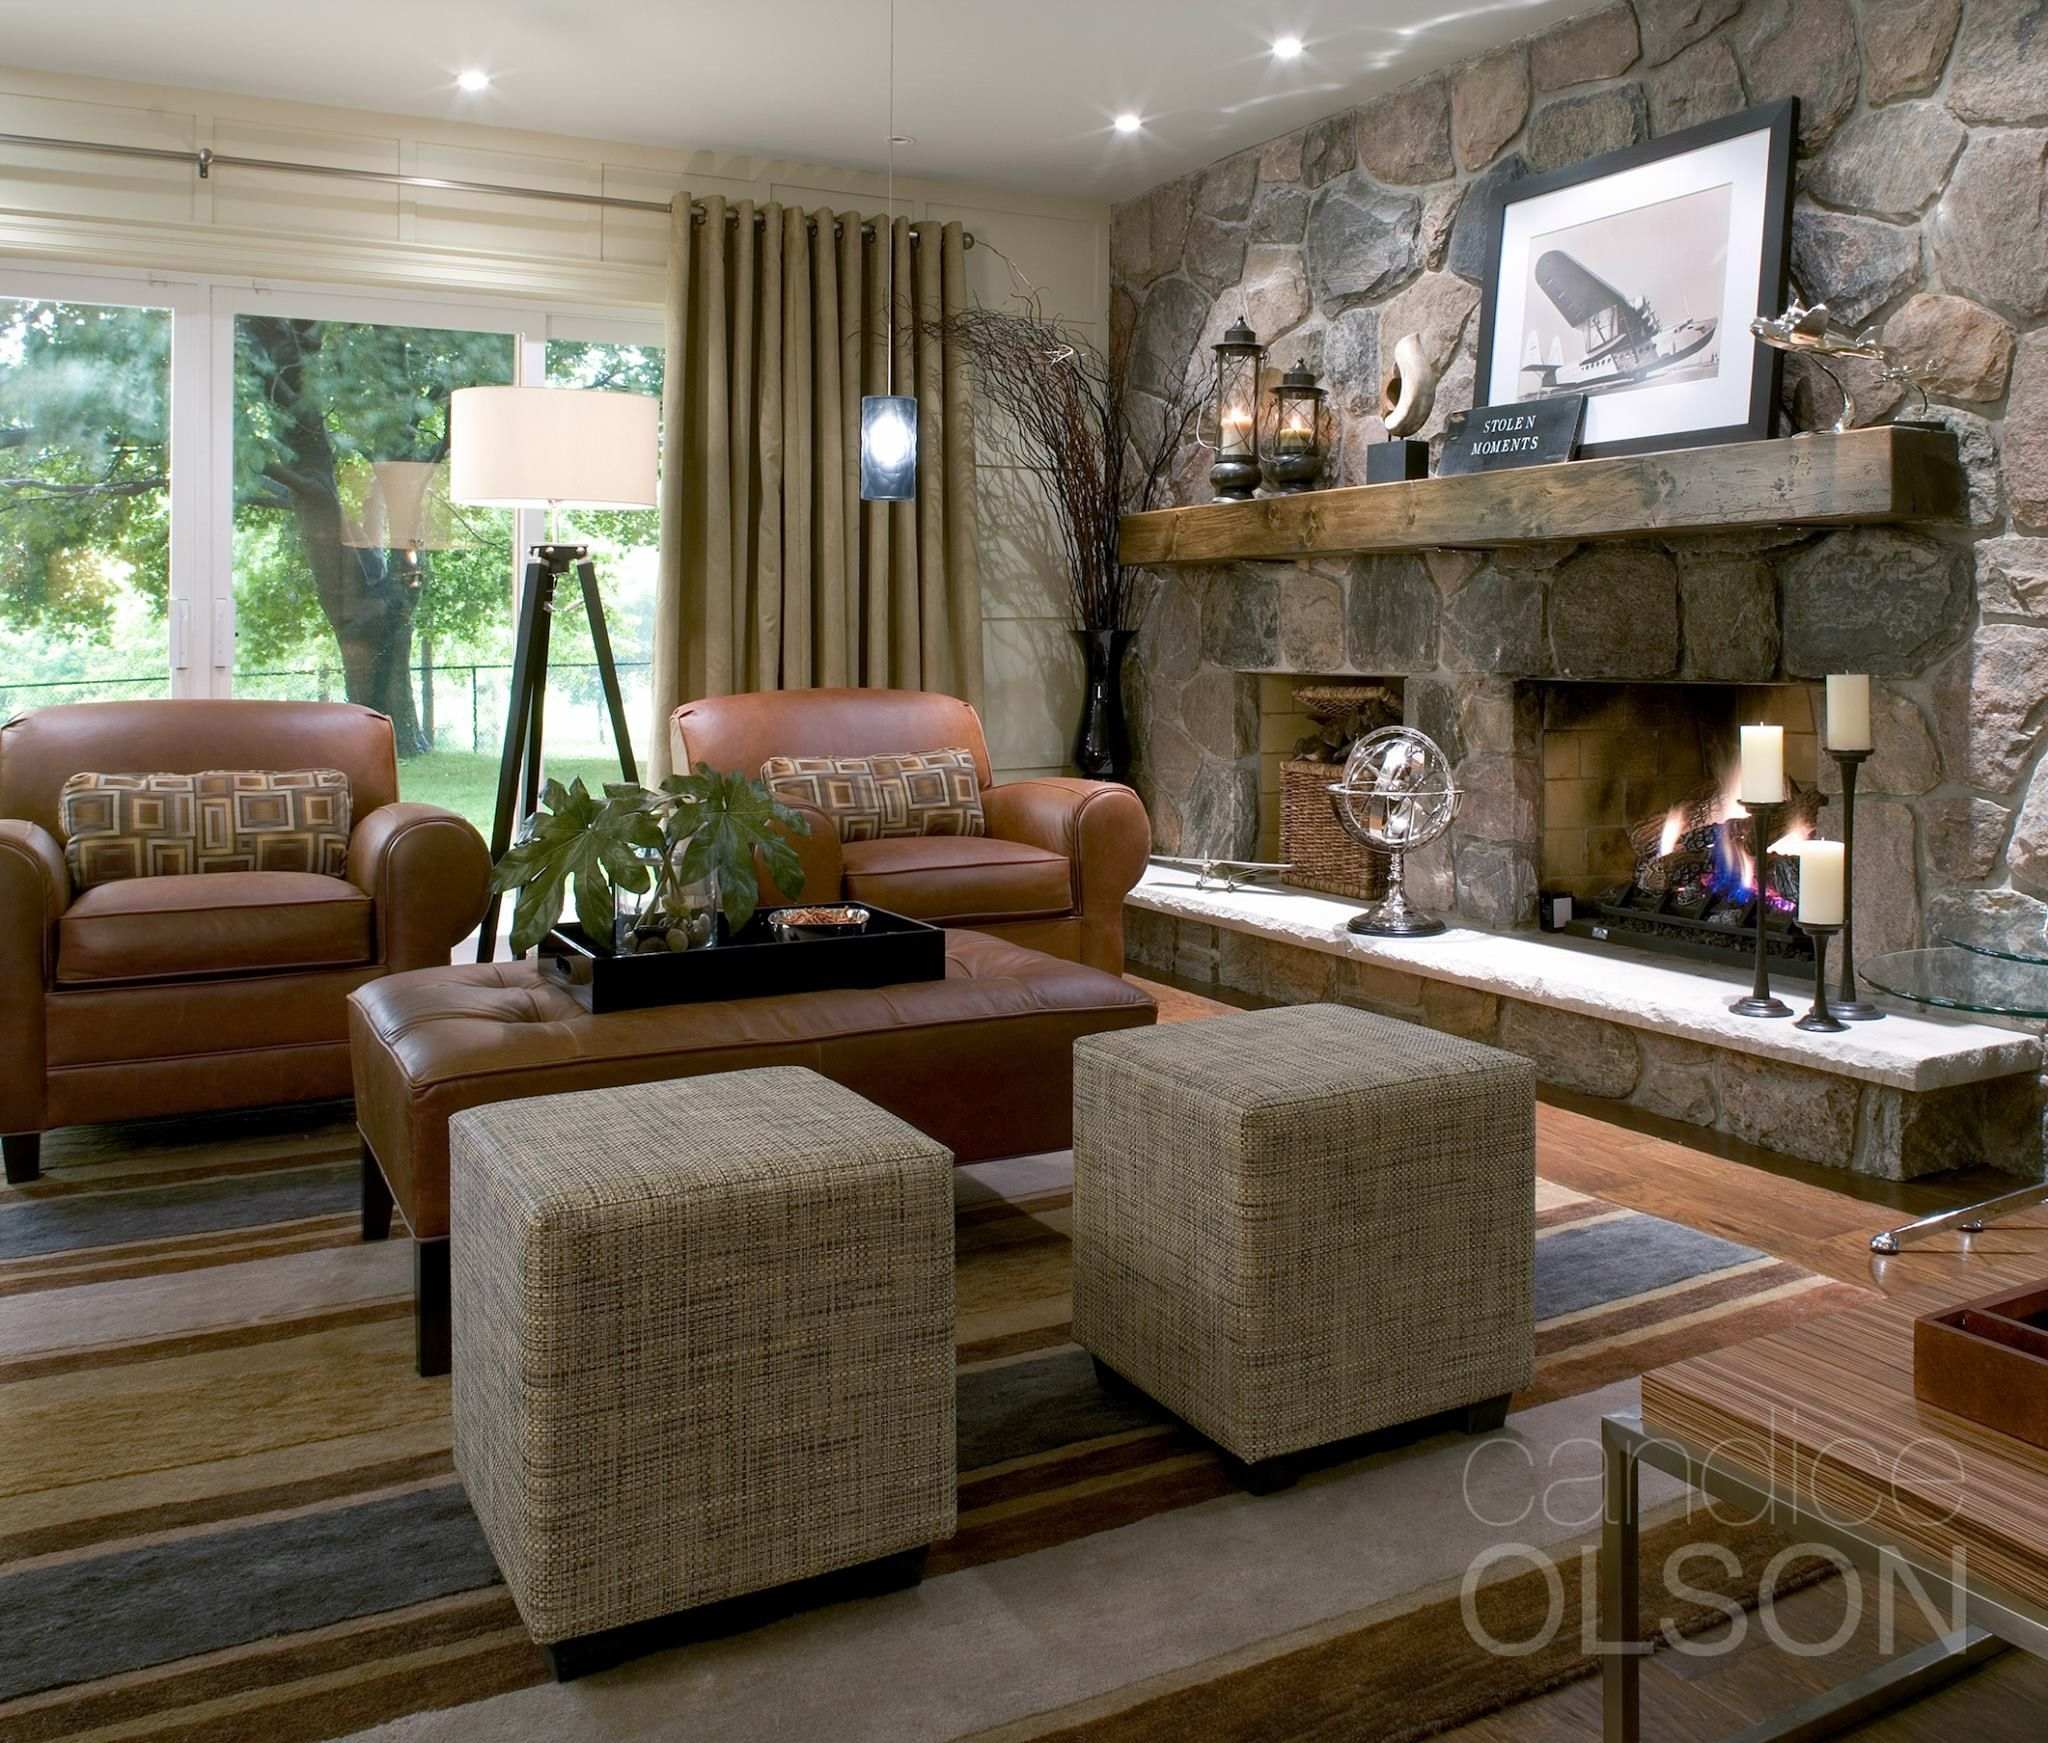 New fireplace with tv eclectic family room minneapolis - Candice Olson Design I Love The Stone Fireplace